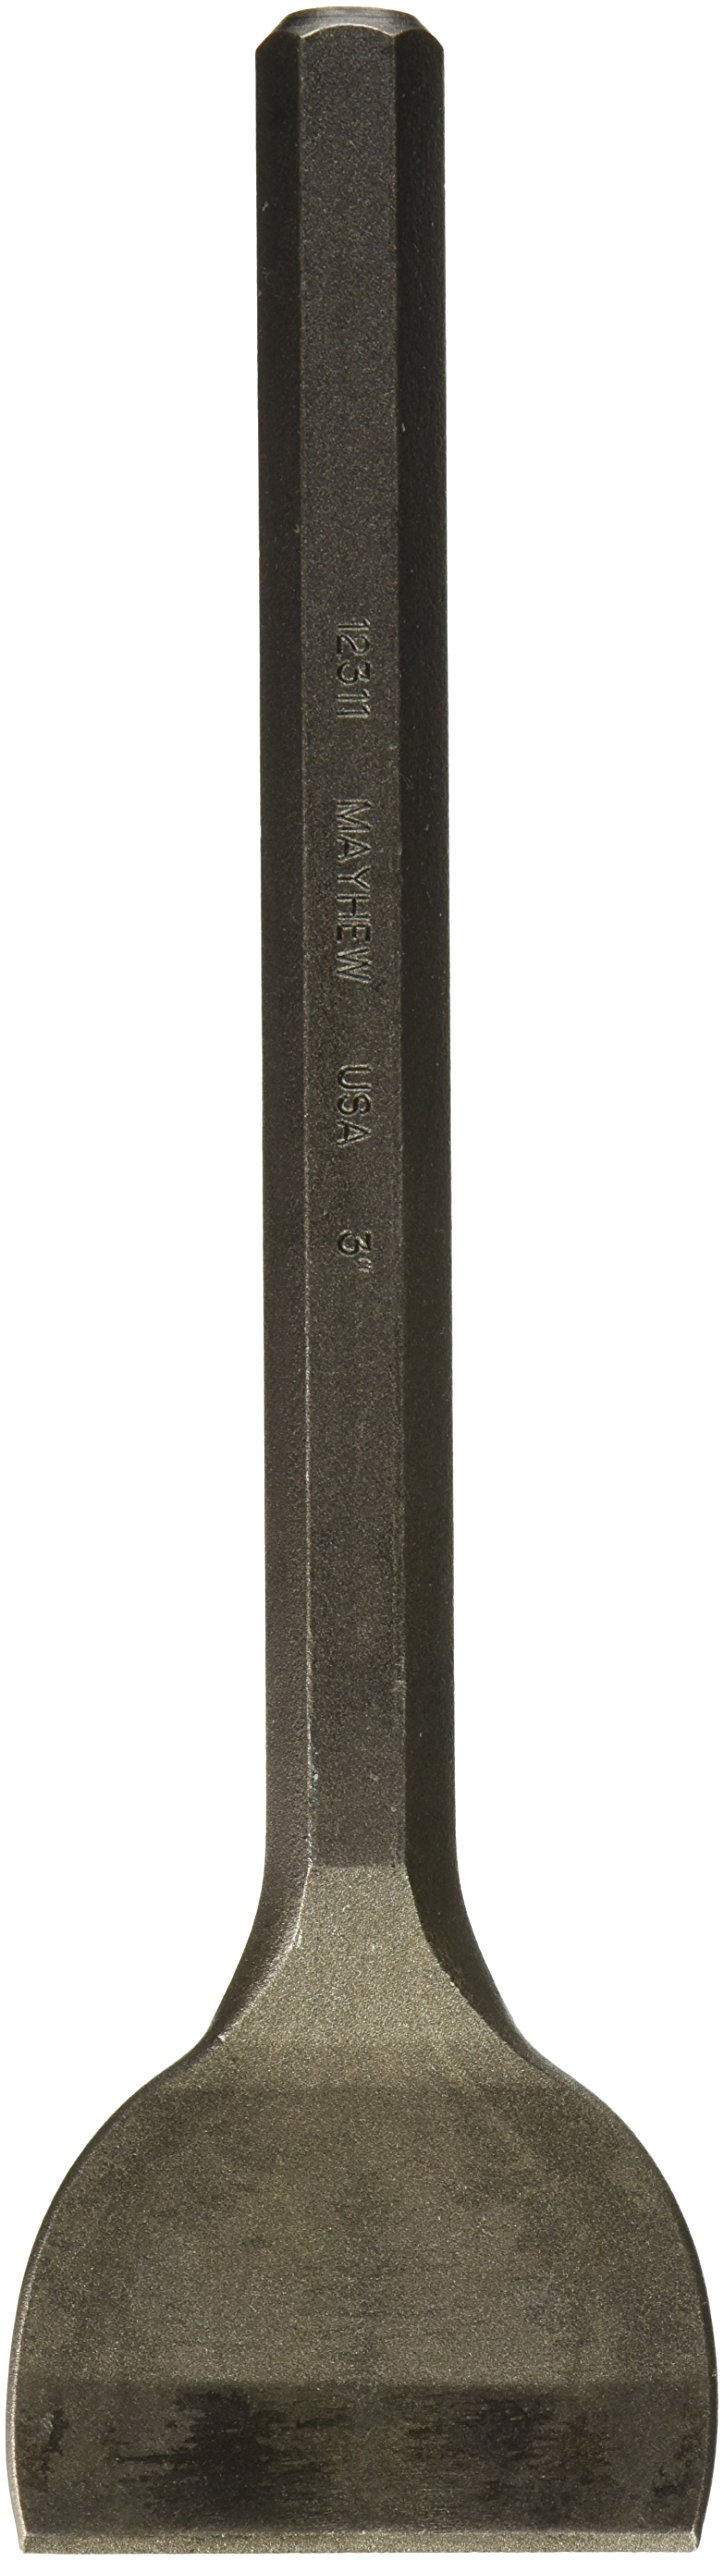 Mayhew Select 94202 3-by-12-Inch Floor Chisel